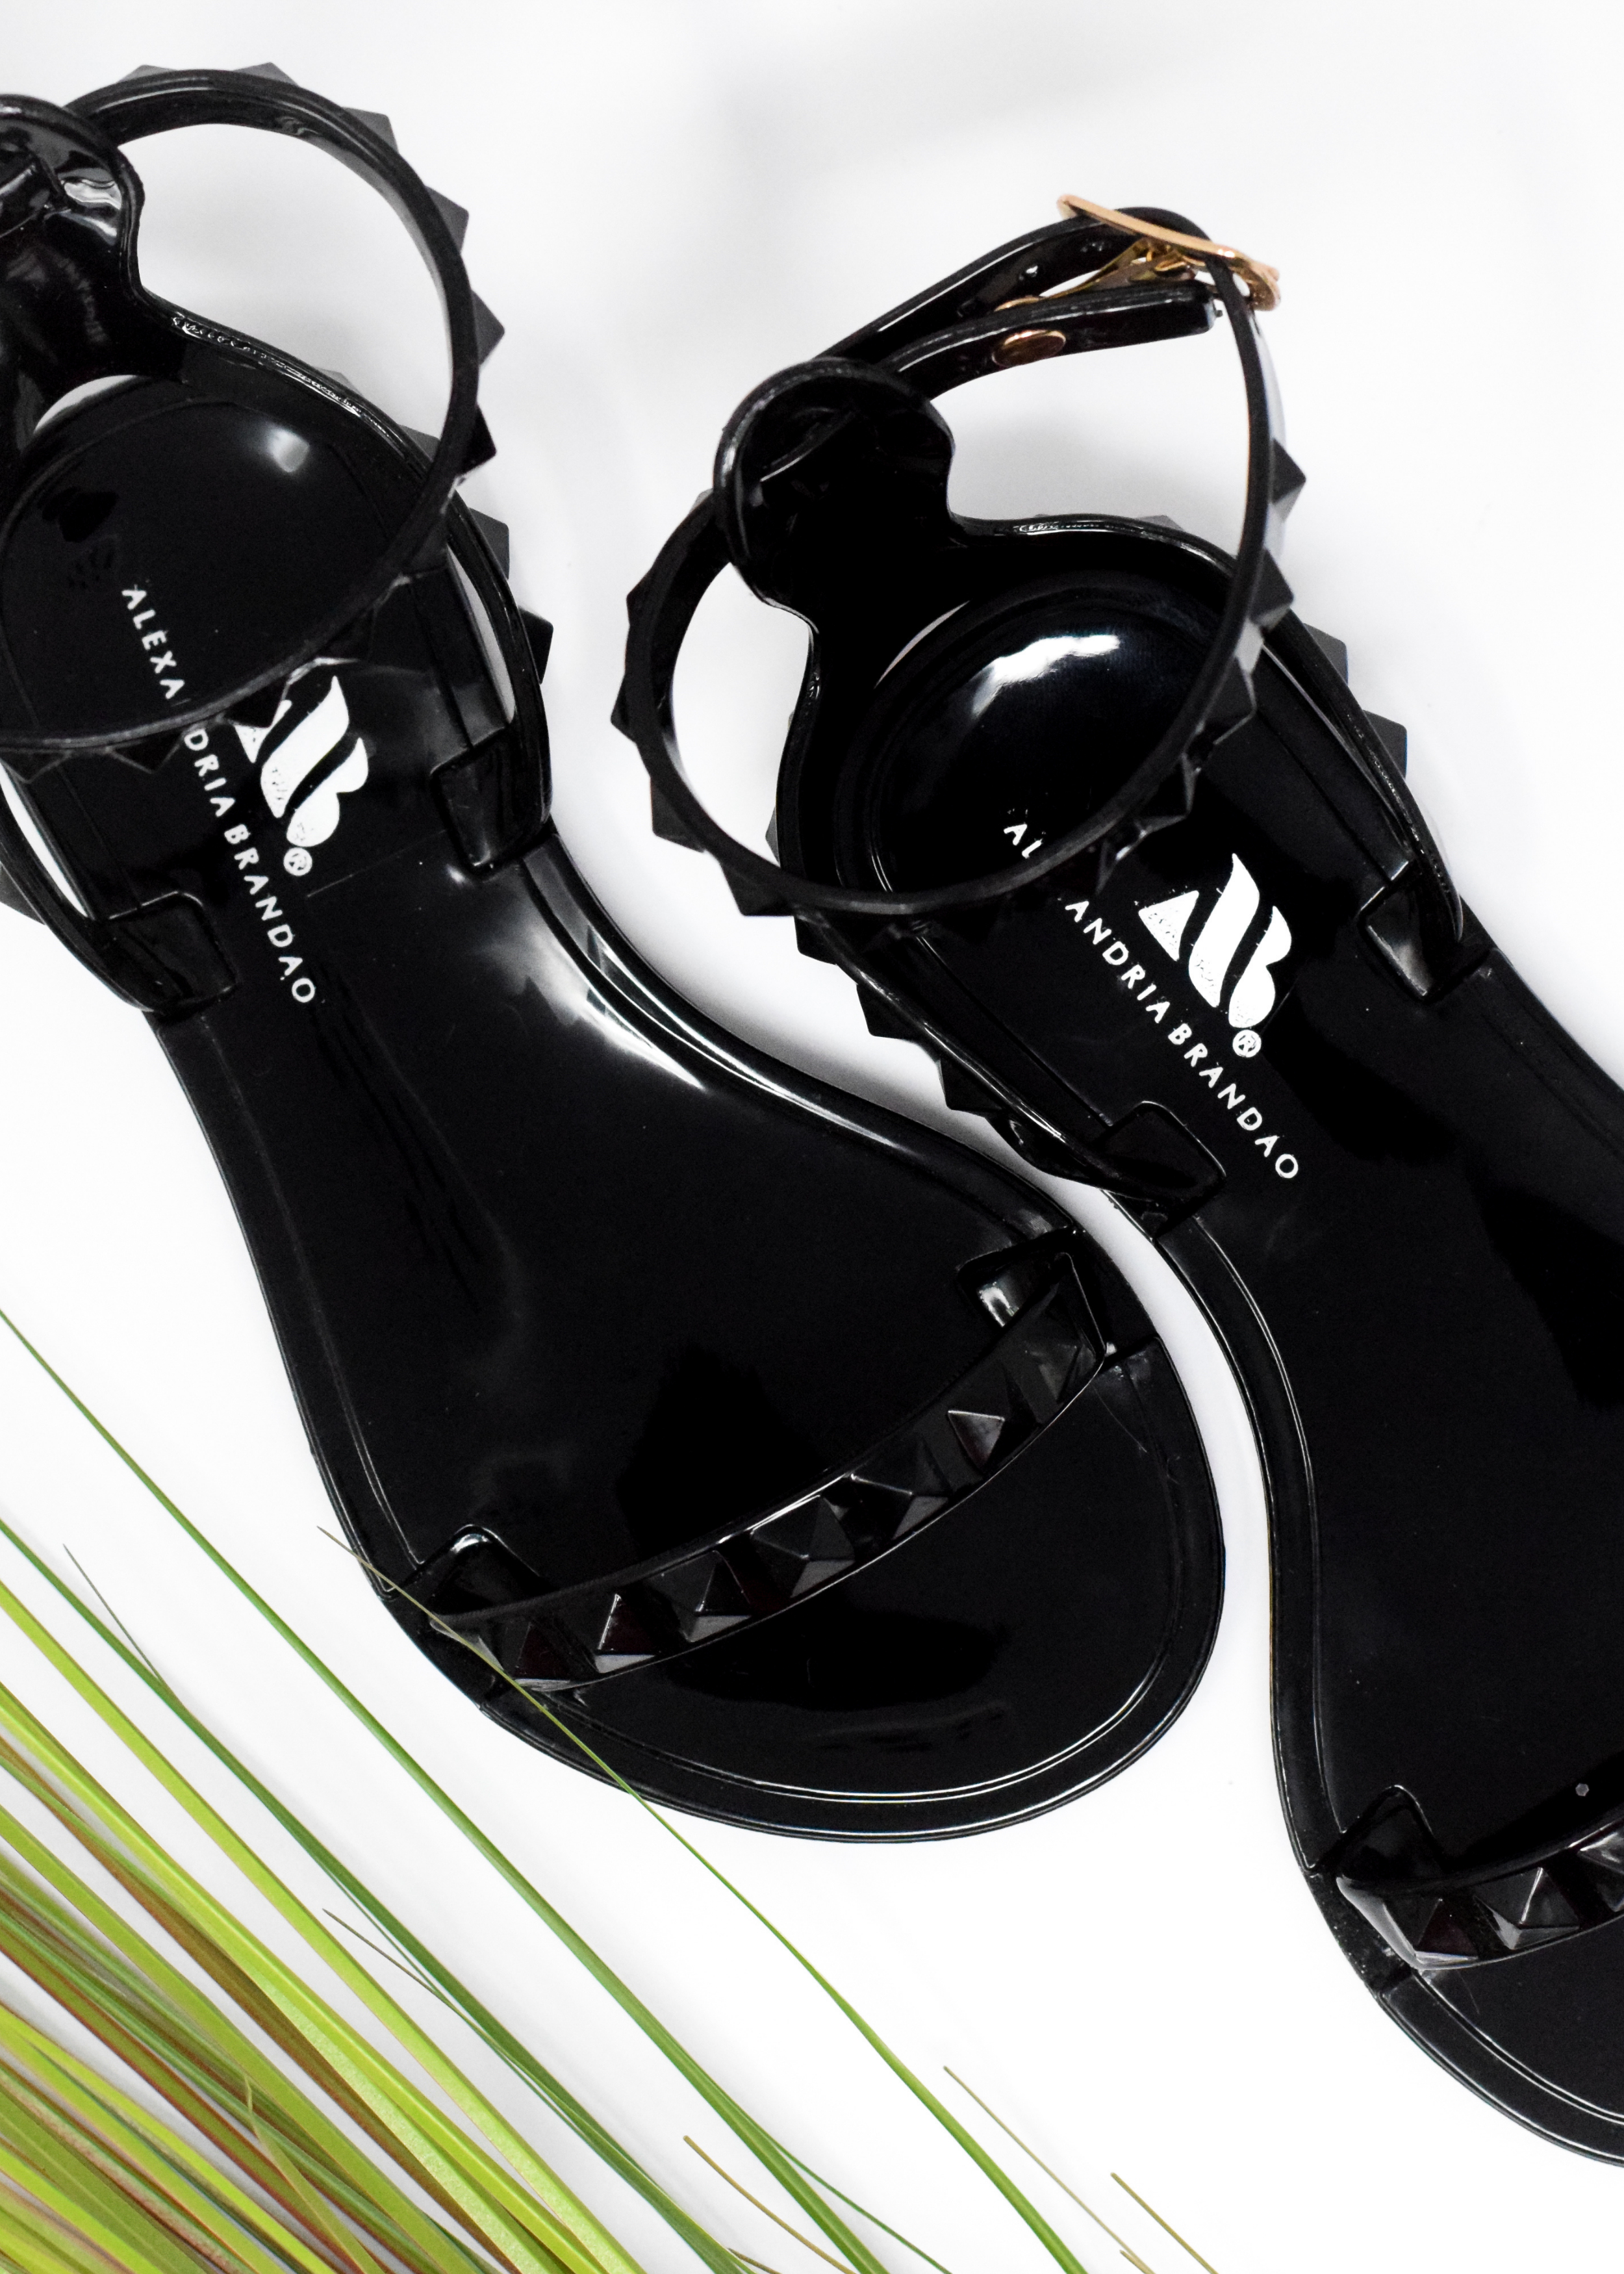 Women's gold sandals with gold glitter sole bottom. Women's gold jelly sandals. Women's ARIA gold shoe by Alexandria Brandao Shoes Miami. Women's mommy and me gold shoes. Women's gold mommy and me sandal to match with her daughter's gold sandals.